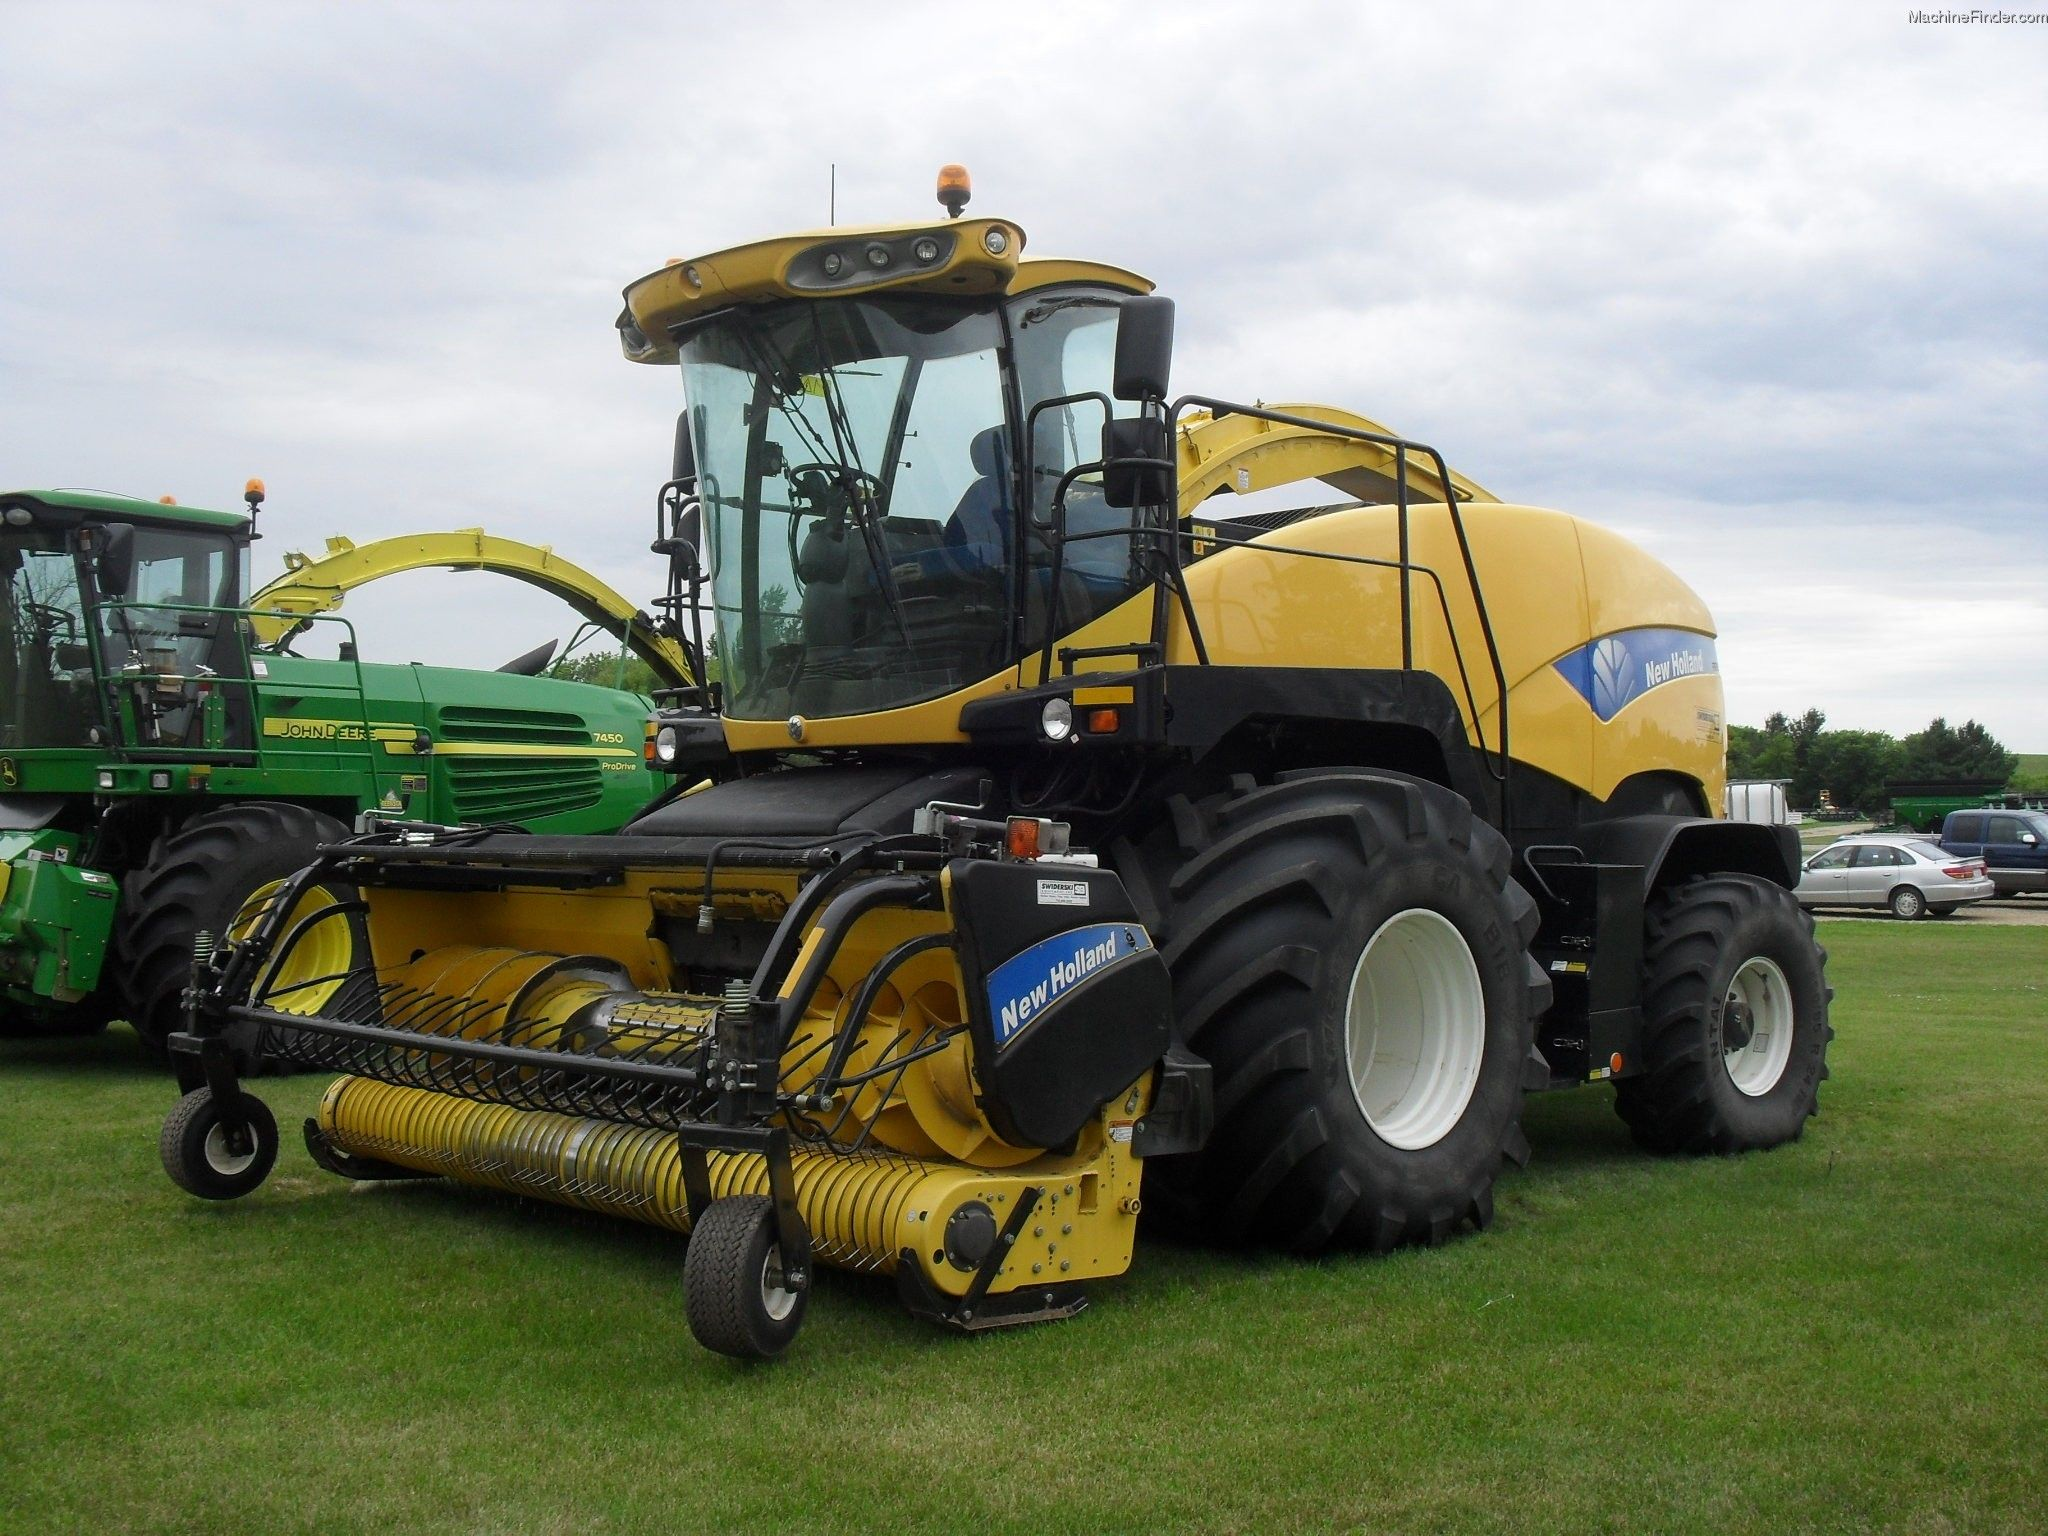 Pin By Larry Songer On Cool Stuff New Holland Agriculture New Holland Ford New Holland